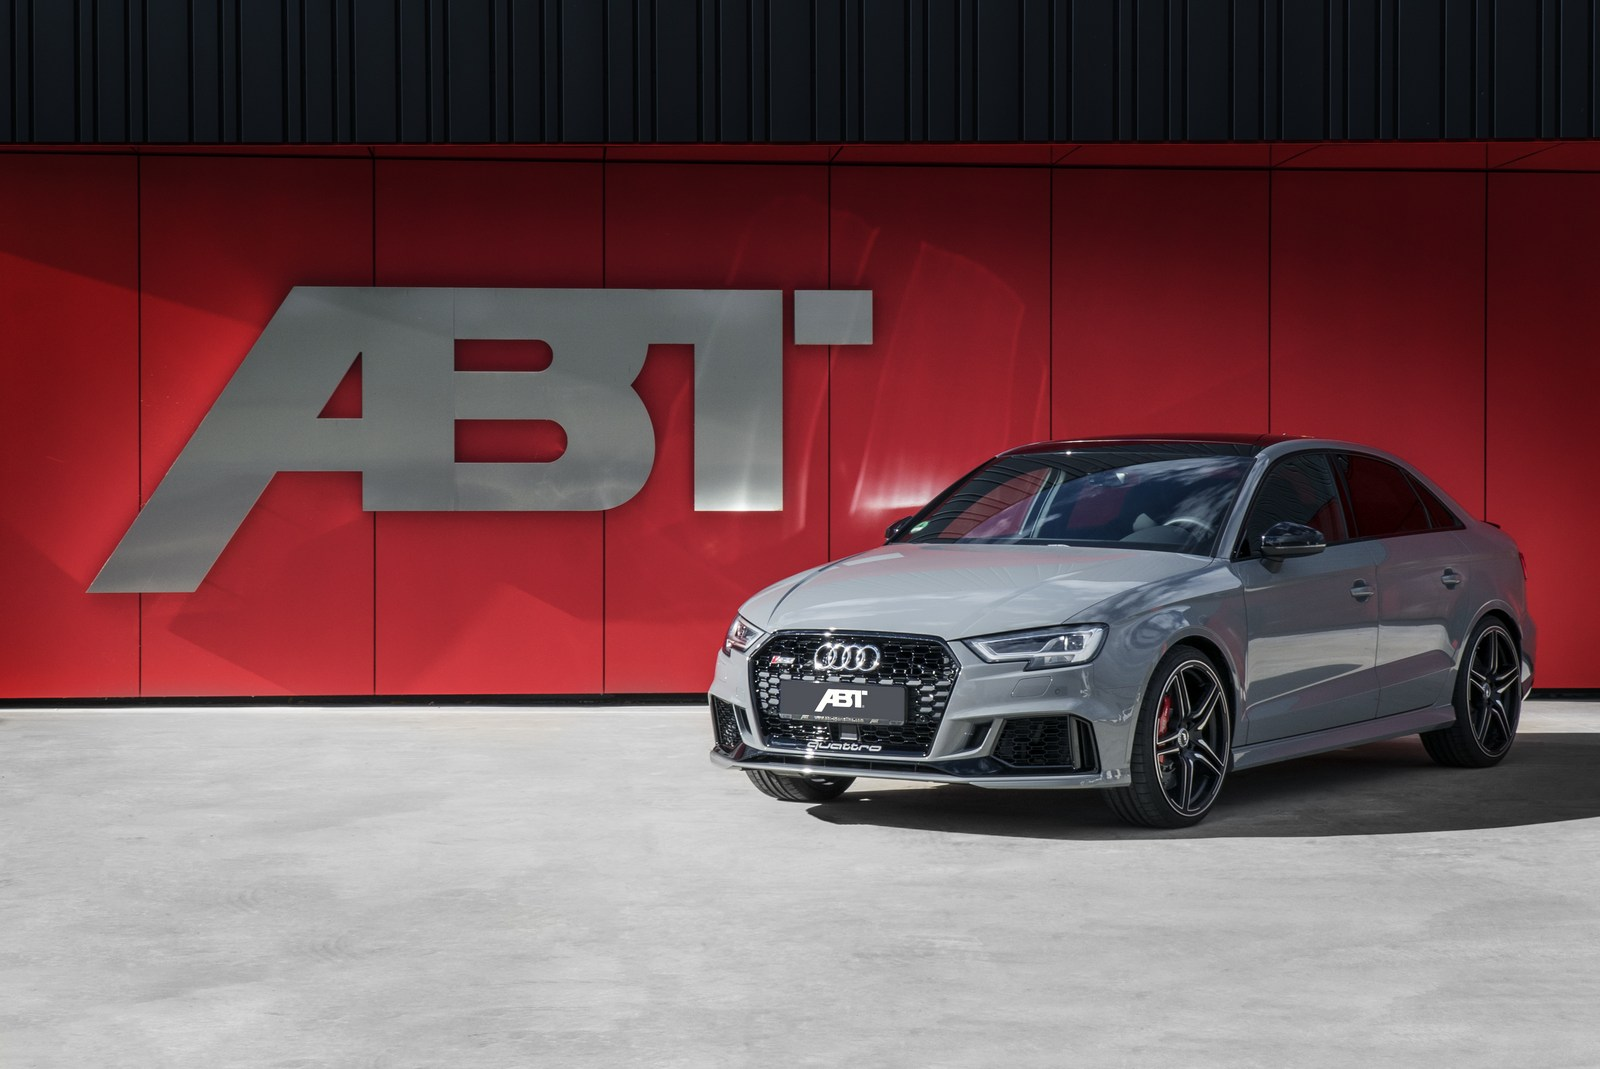 abt sportline audi rs3 headed to essen with 460 hp. Black Bedroom Furniture Sets. Home Design Ideas